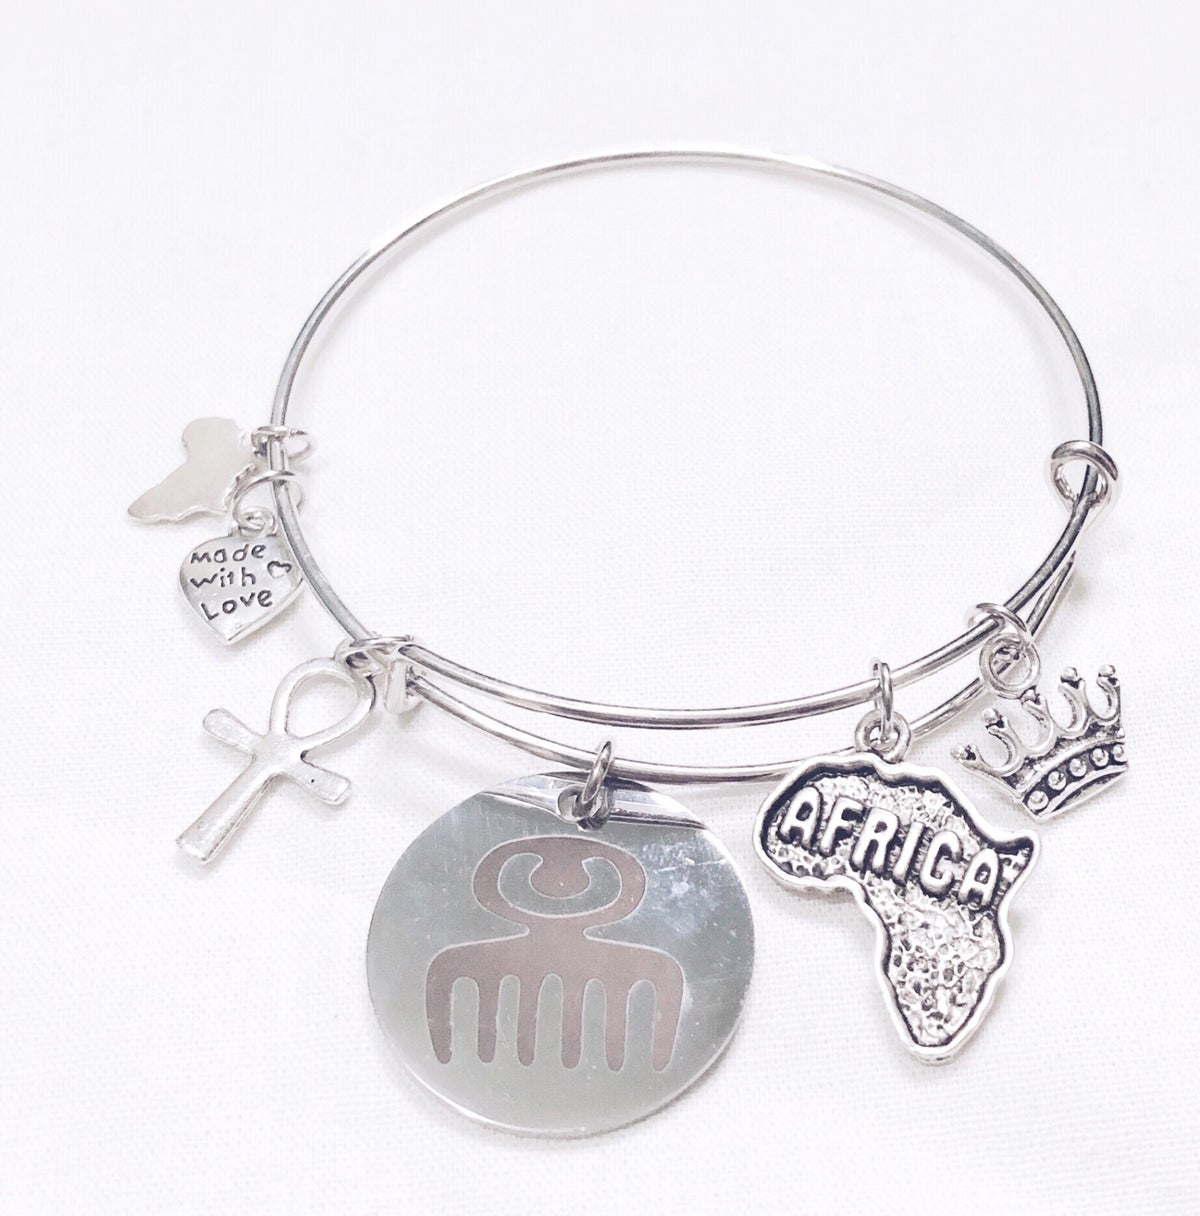 Image of Adinkra Duafe Bangle